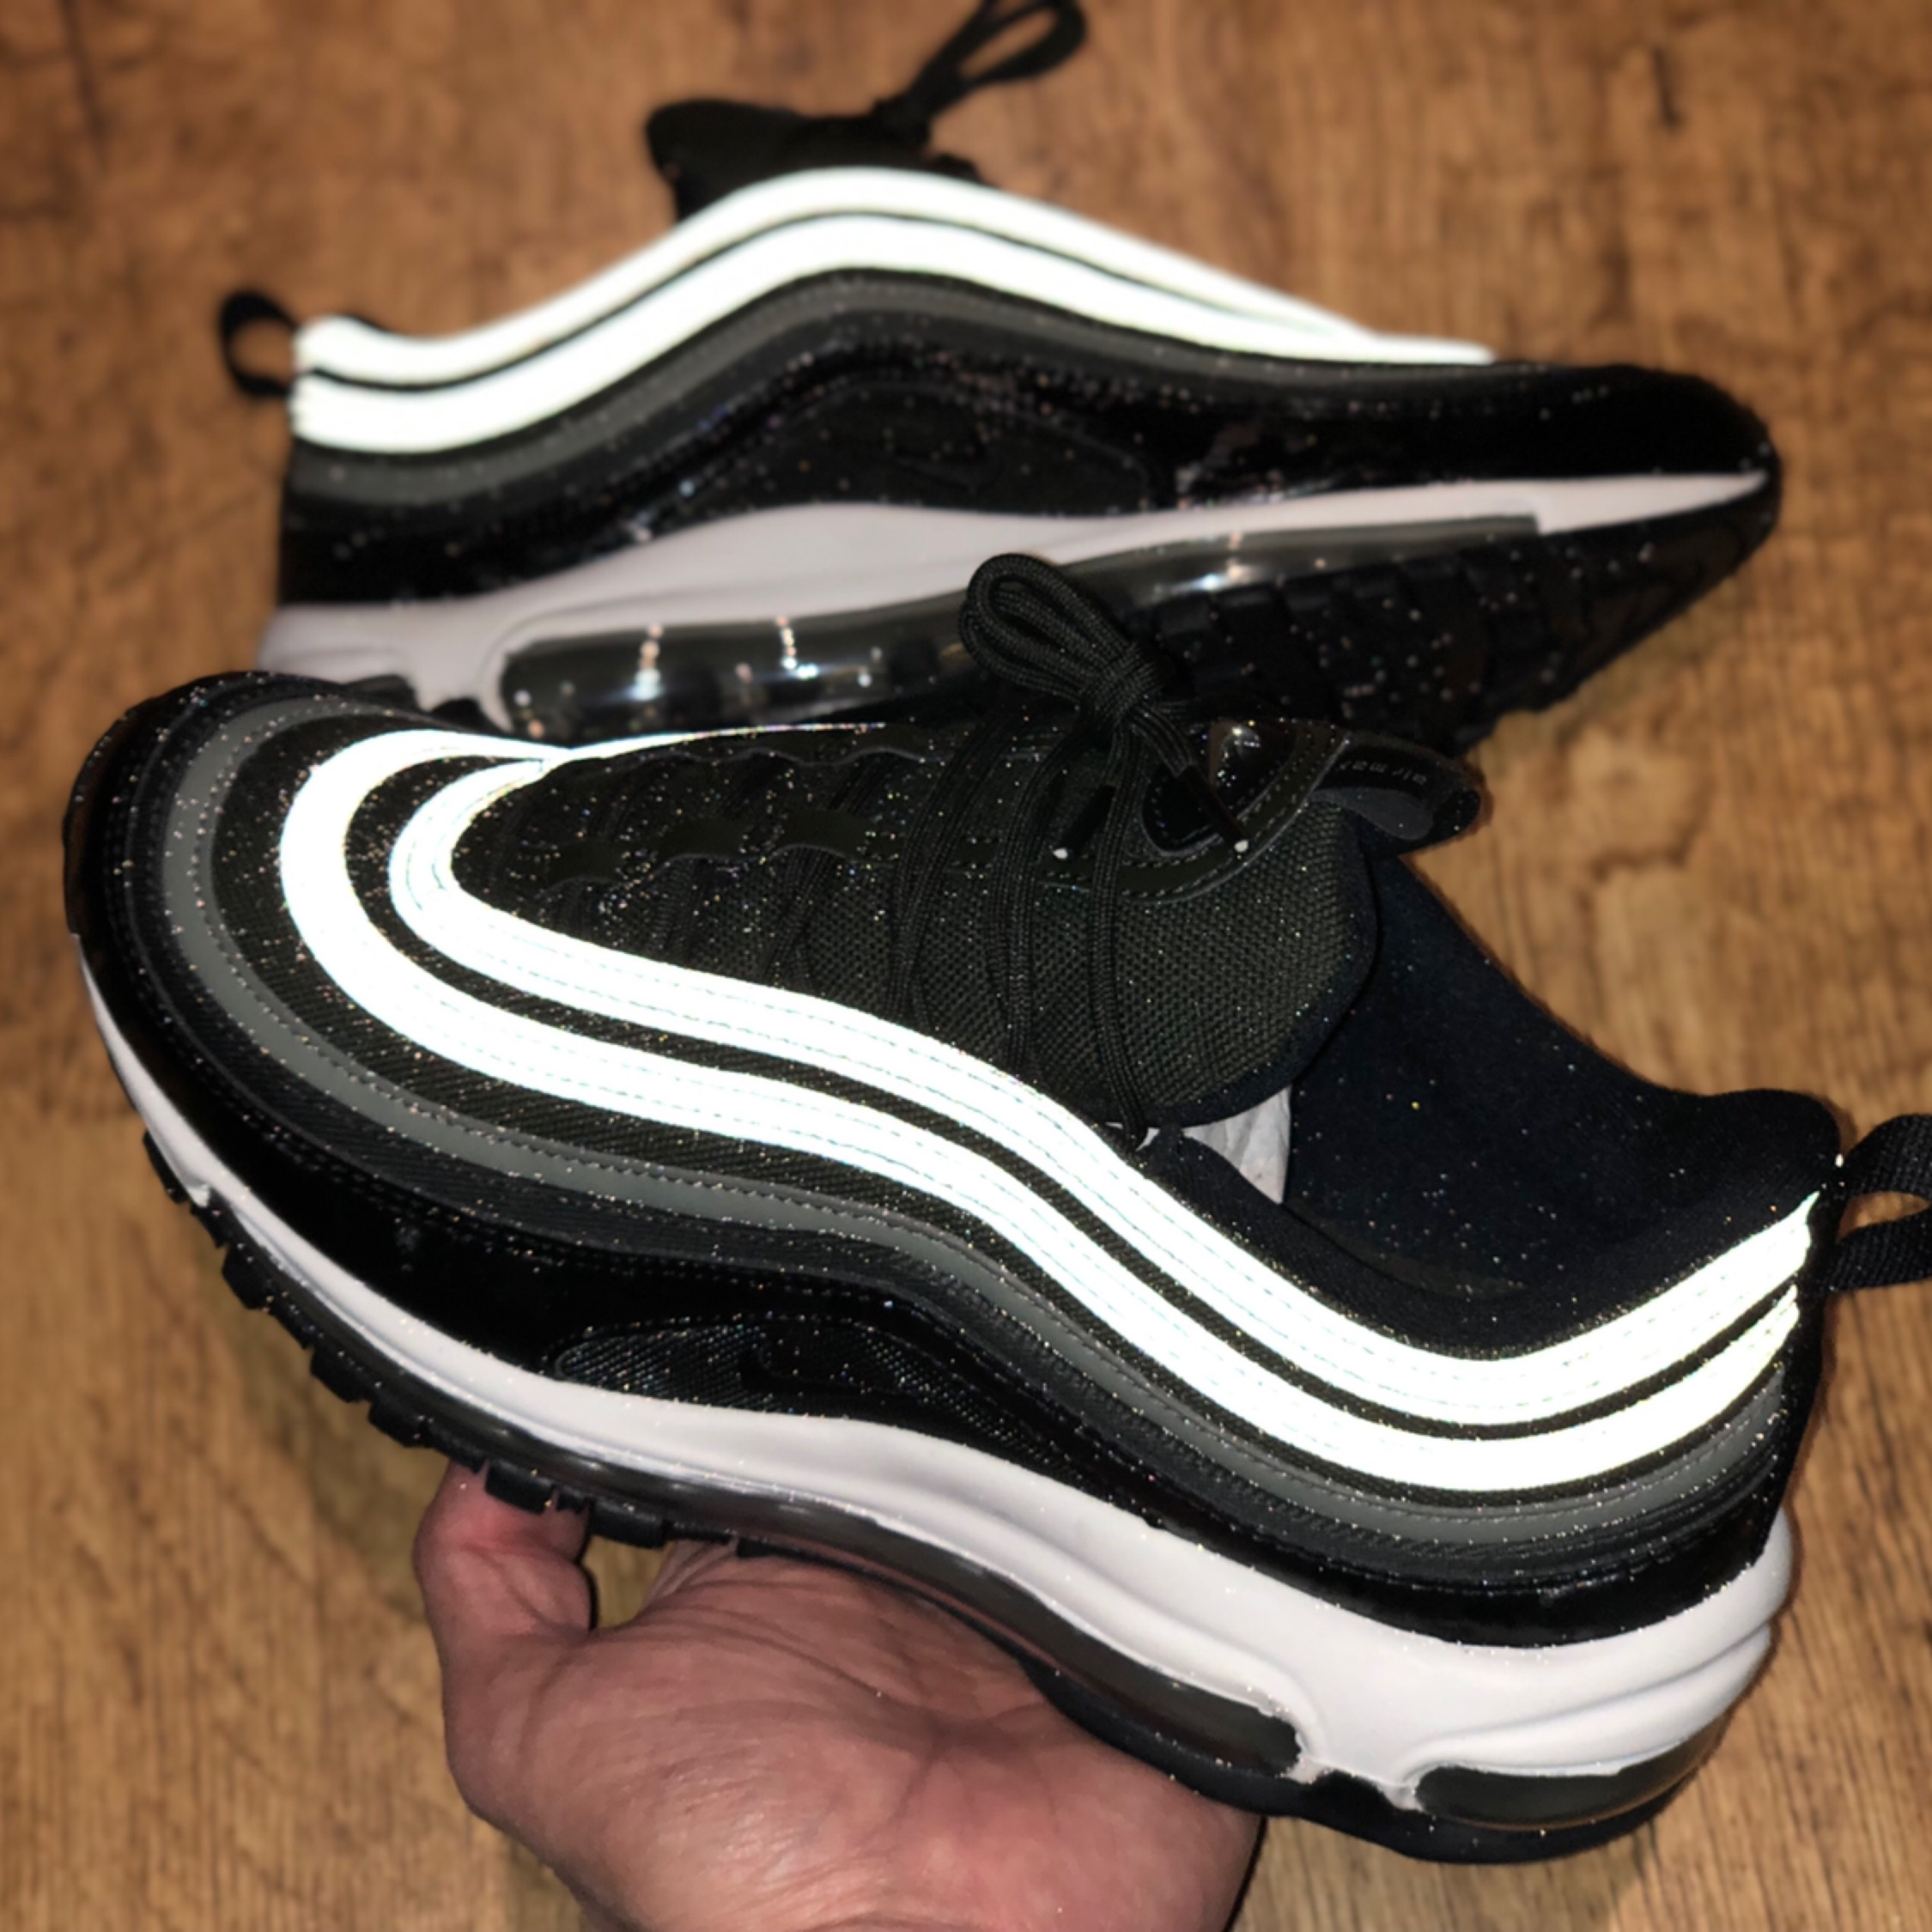 best half price best deals on Nike Air Max 97 Premium Camo Uk 6 Eur 40 Us 8.5